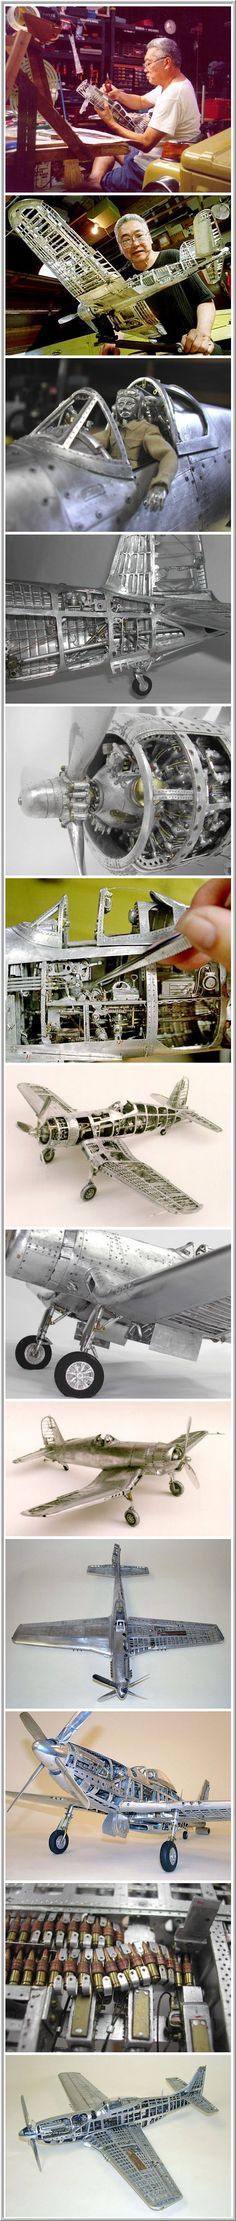 Unique model airplanes made of aluminum, La locura hecha realidad. Estos vuelan de verdad.